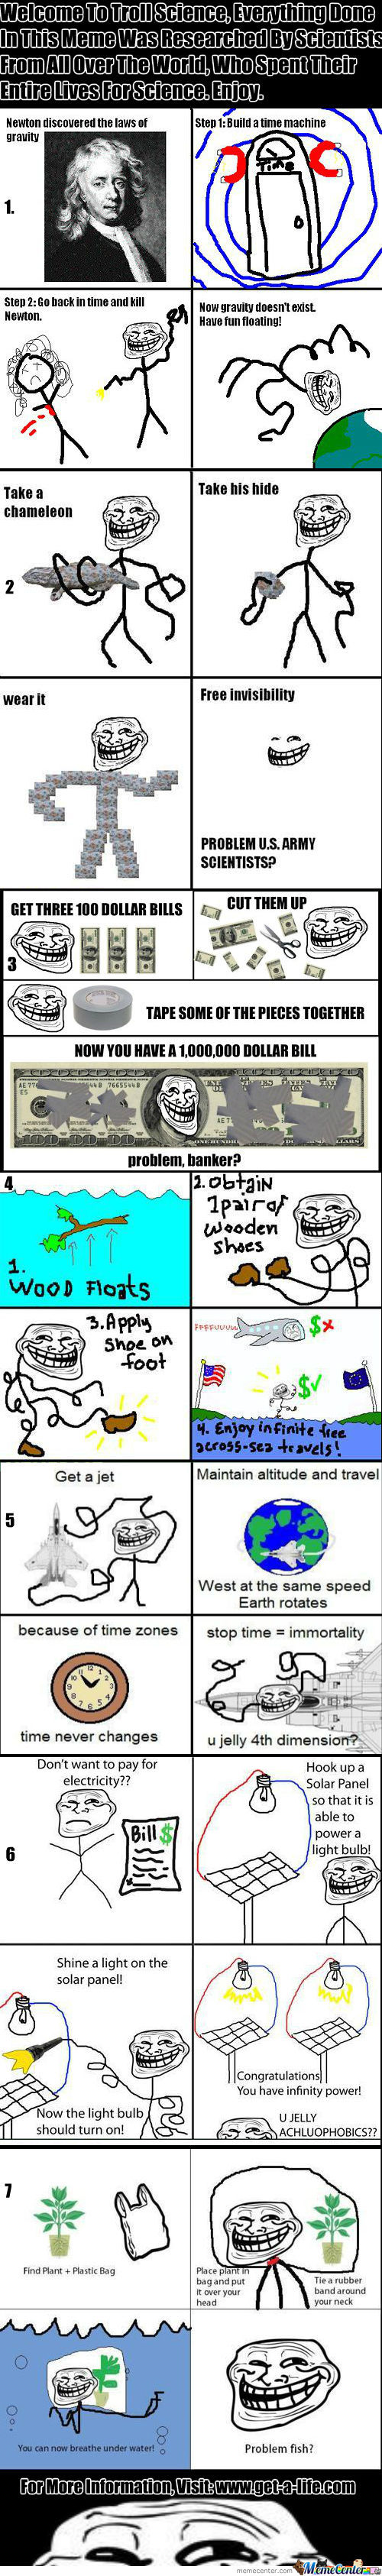 Troll Science: Lesson 1